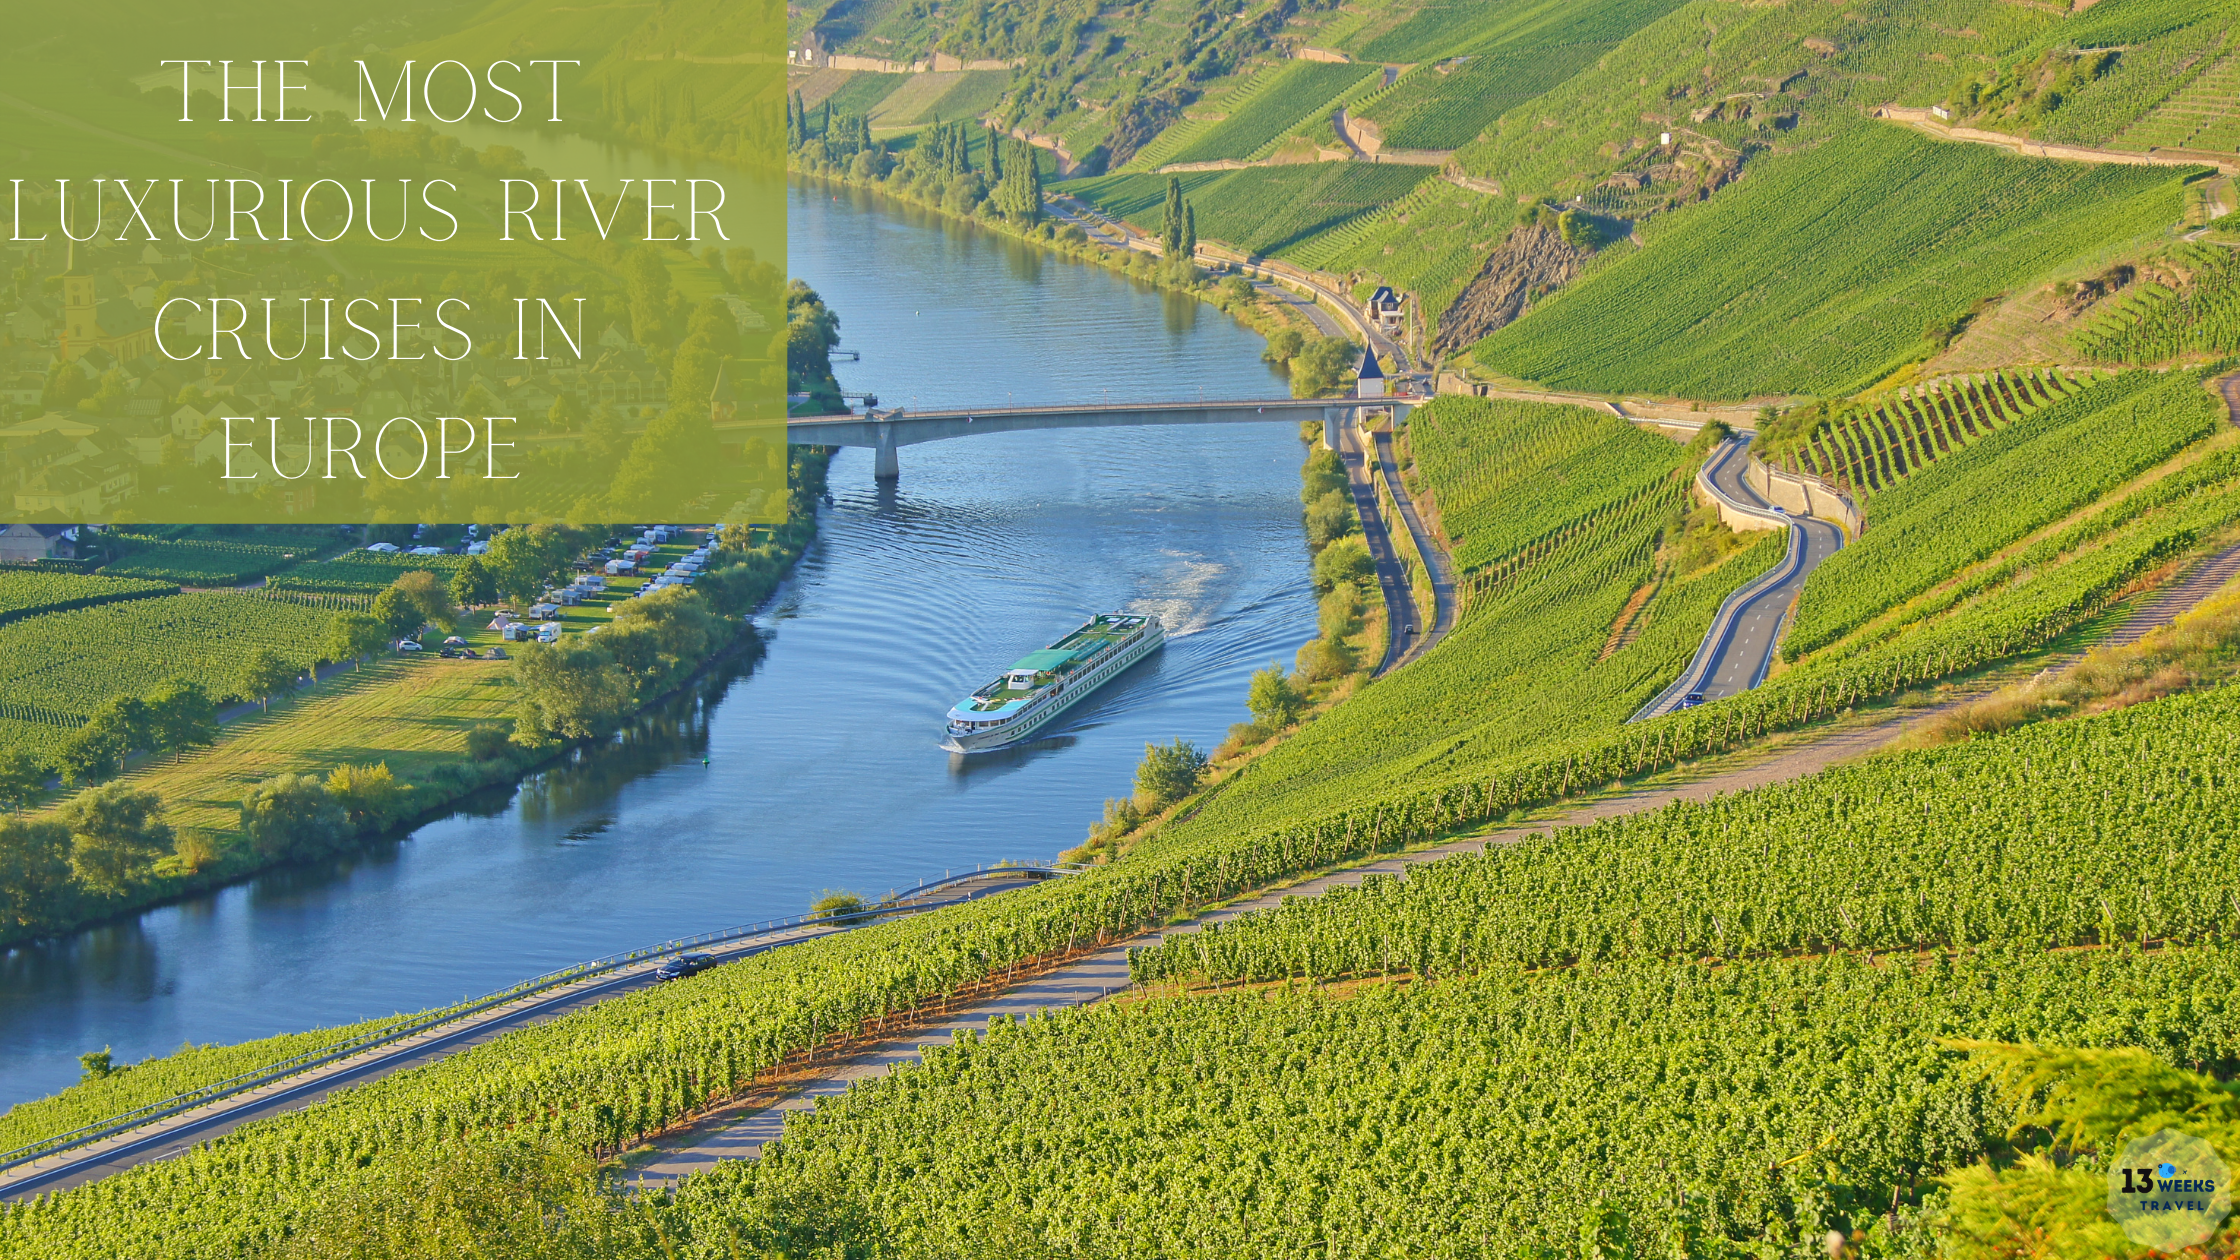 Most Luxurious River Cruises in Europe _ 13 Weeks Travel